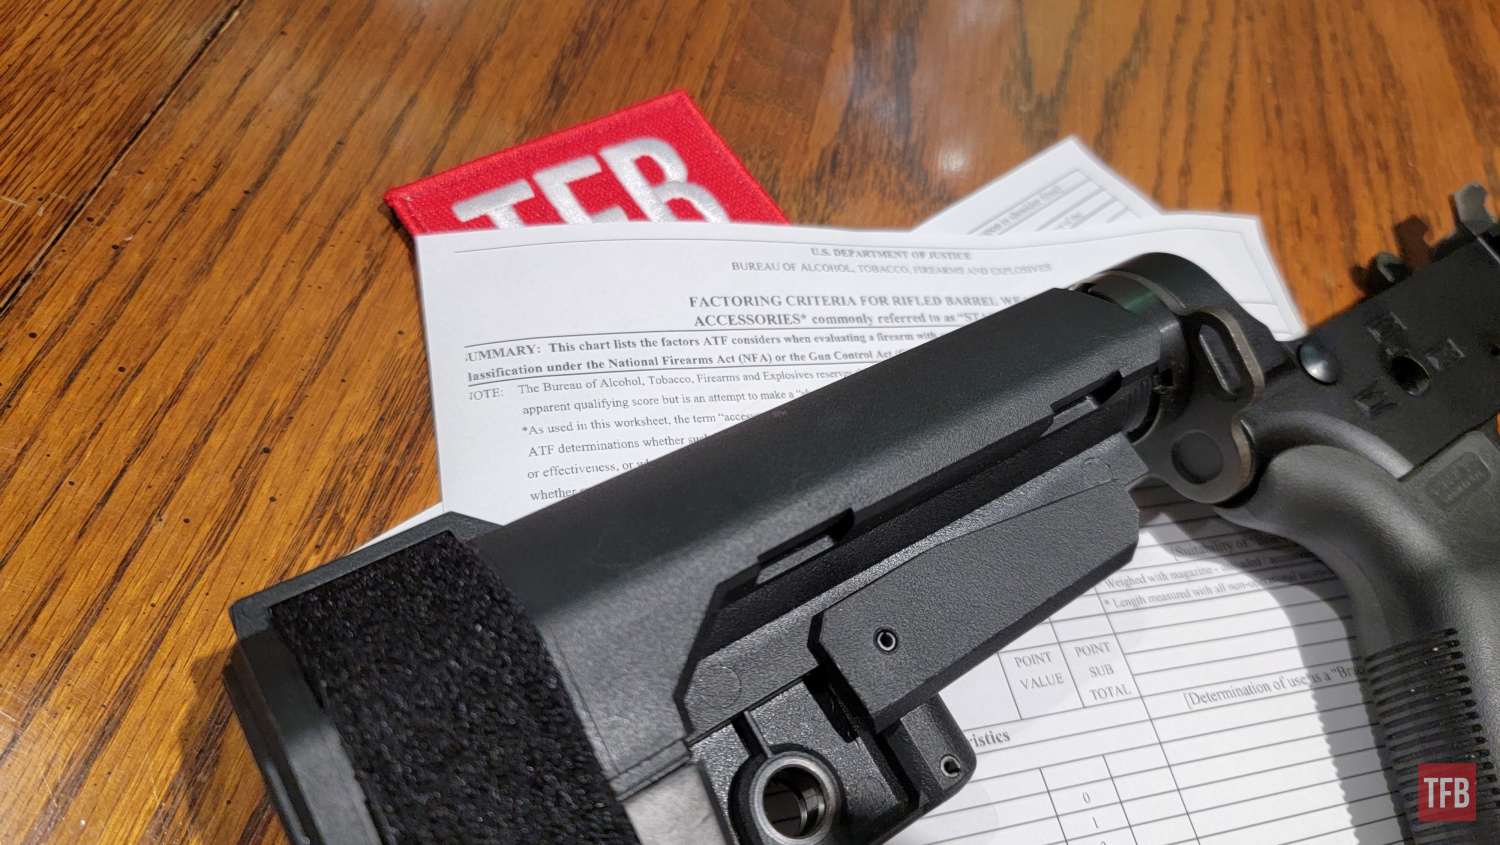 How to Effectively Comment on Proposed ATF Regulations